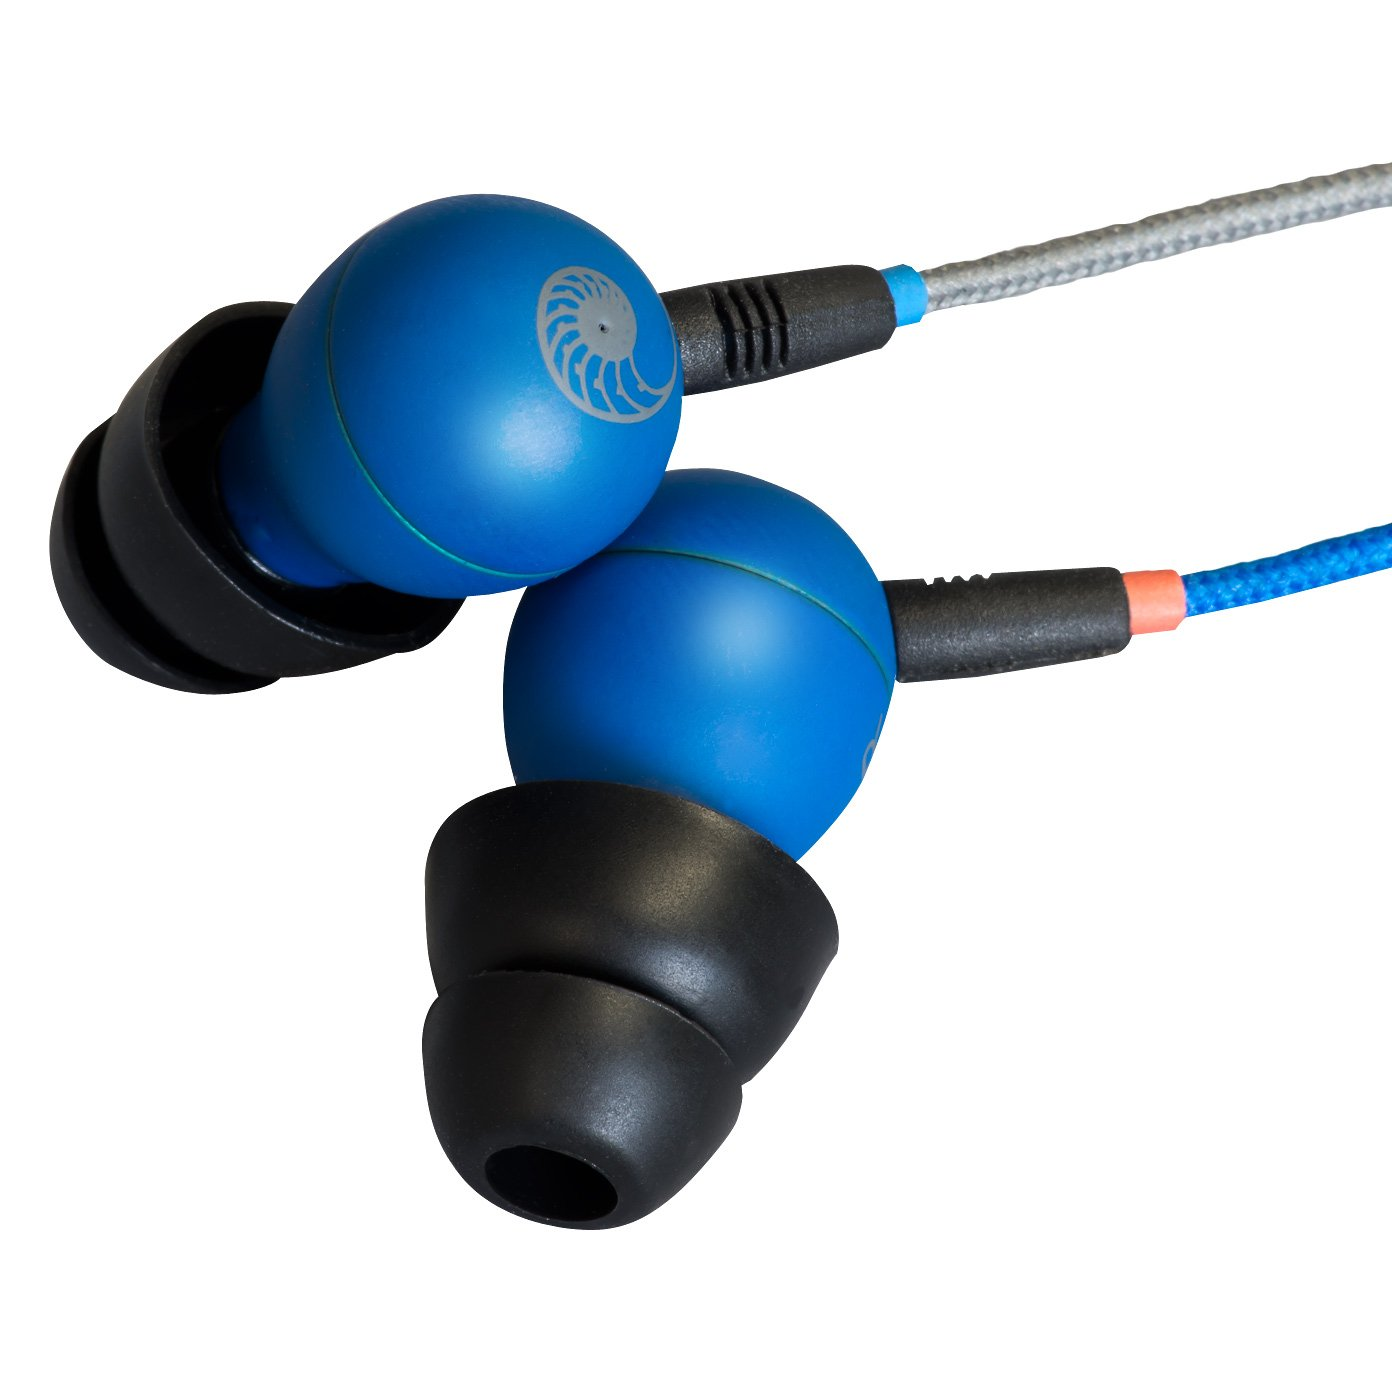 Cardas Audio A8 Ear Speakers, In-Ear Headphones